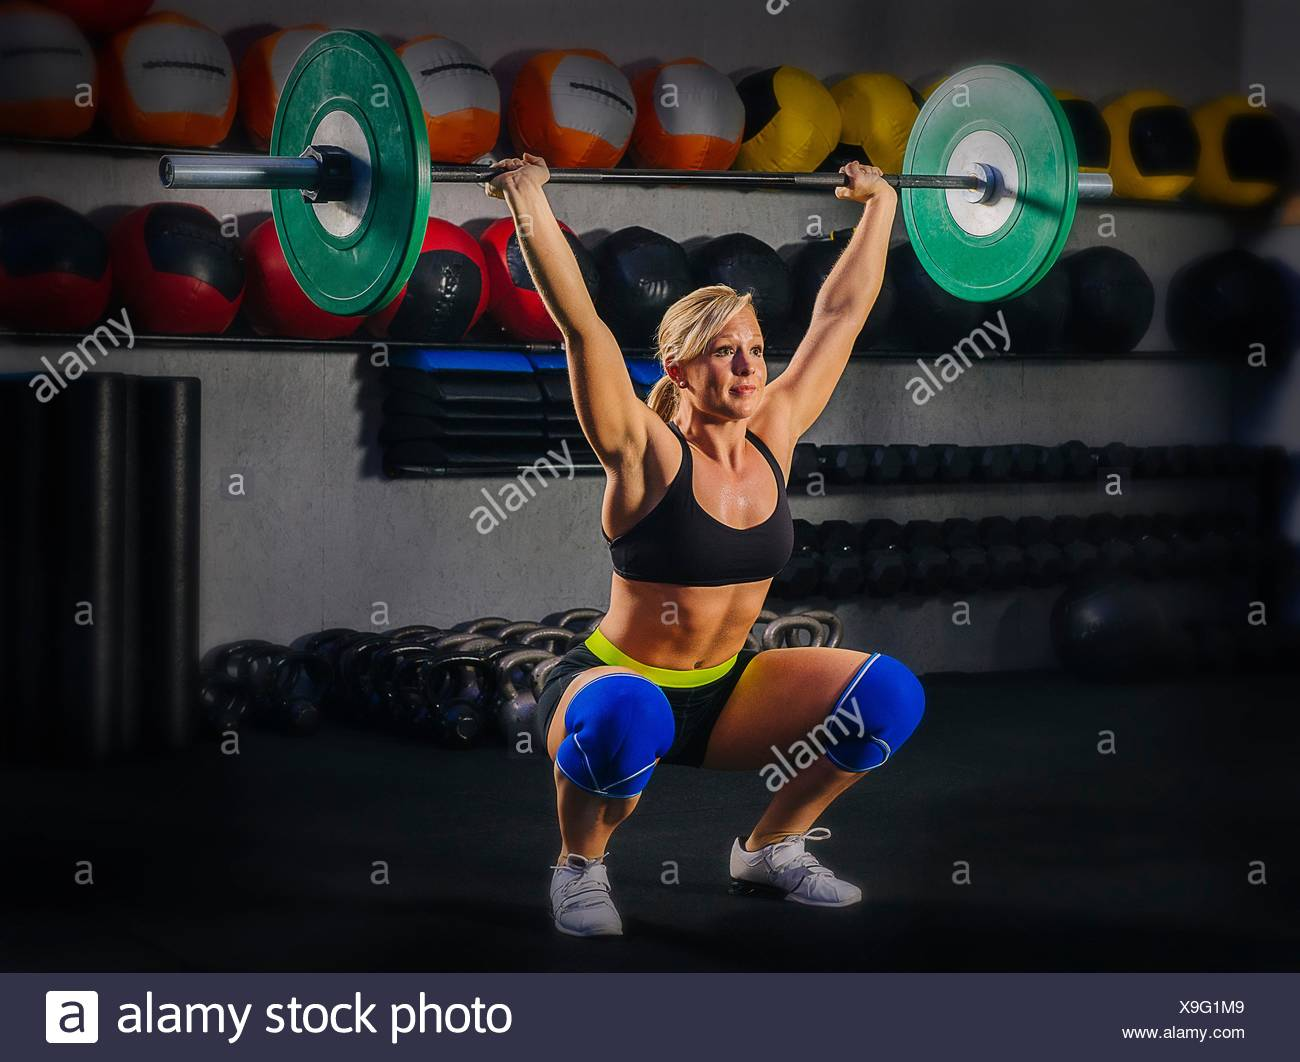 Young woman squatting with barbell raised in gym - Stock Image